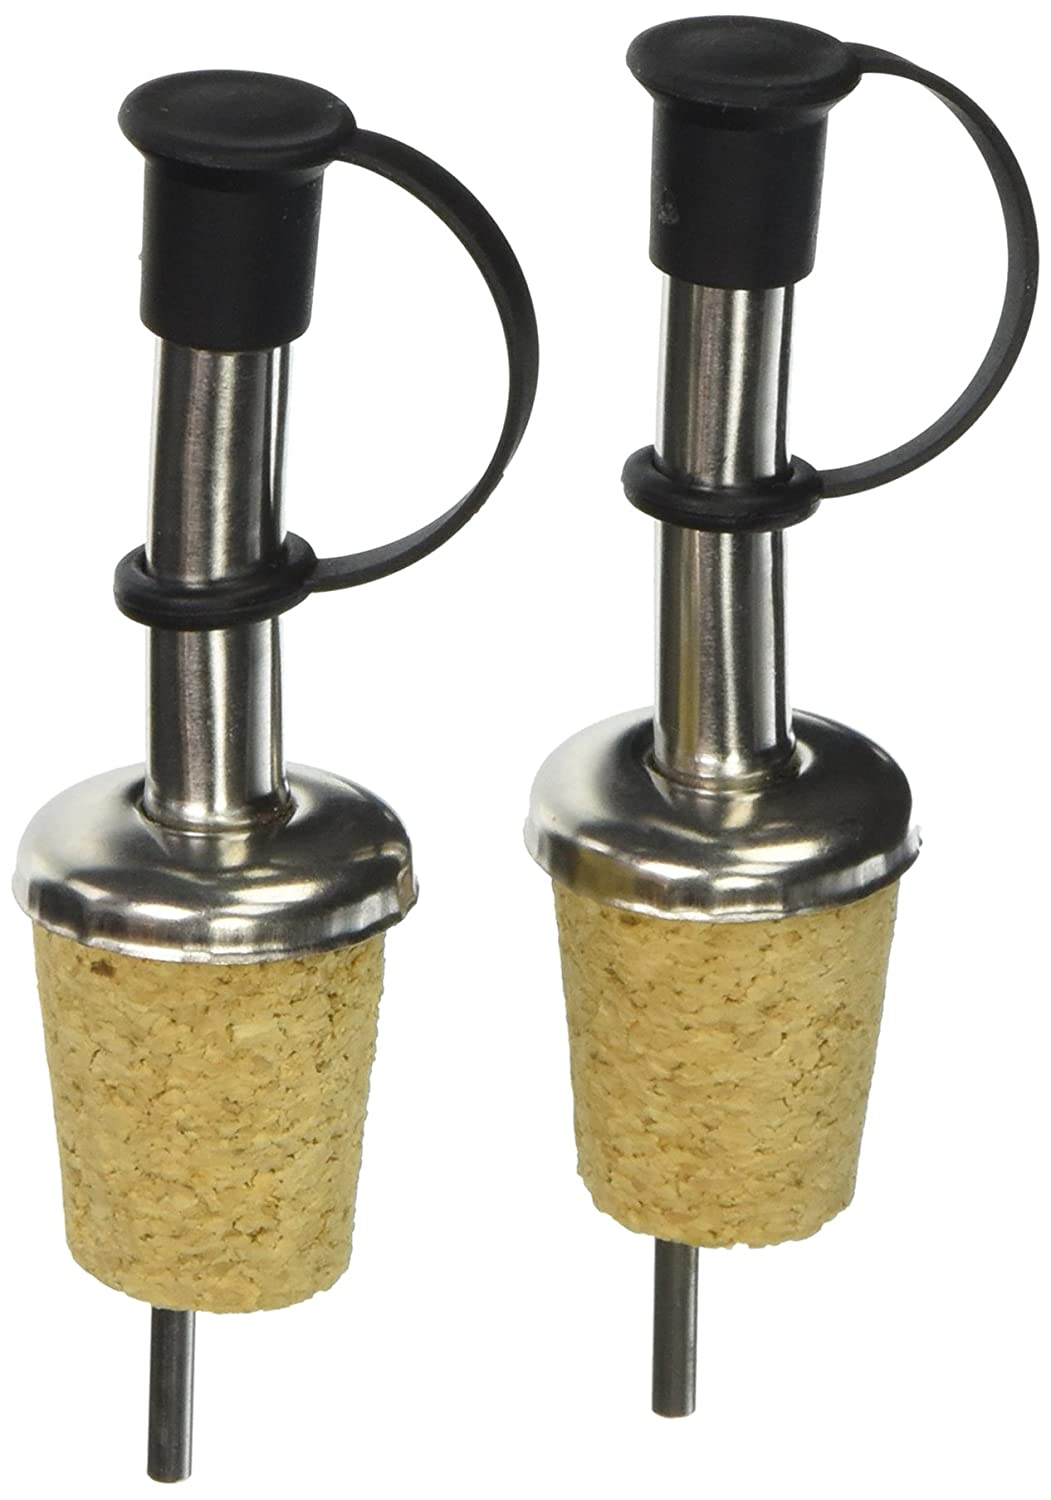 Southern Homewares Stainless Steel Capped Free Flow Pourer with Wine Liquor Bottle Cork Stopper 2-Pack SH-10006-S2 Silver